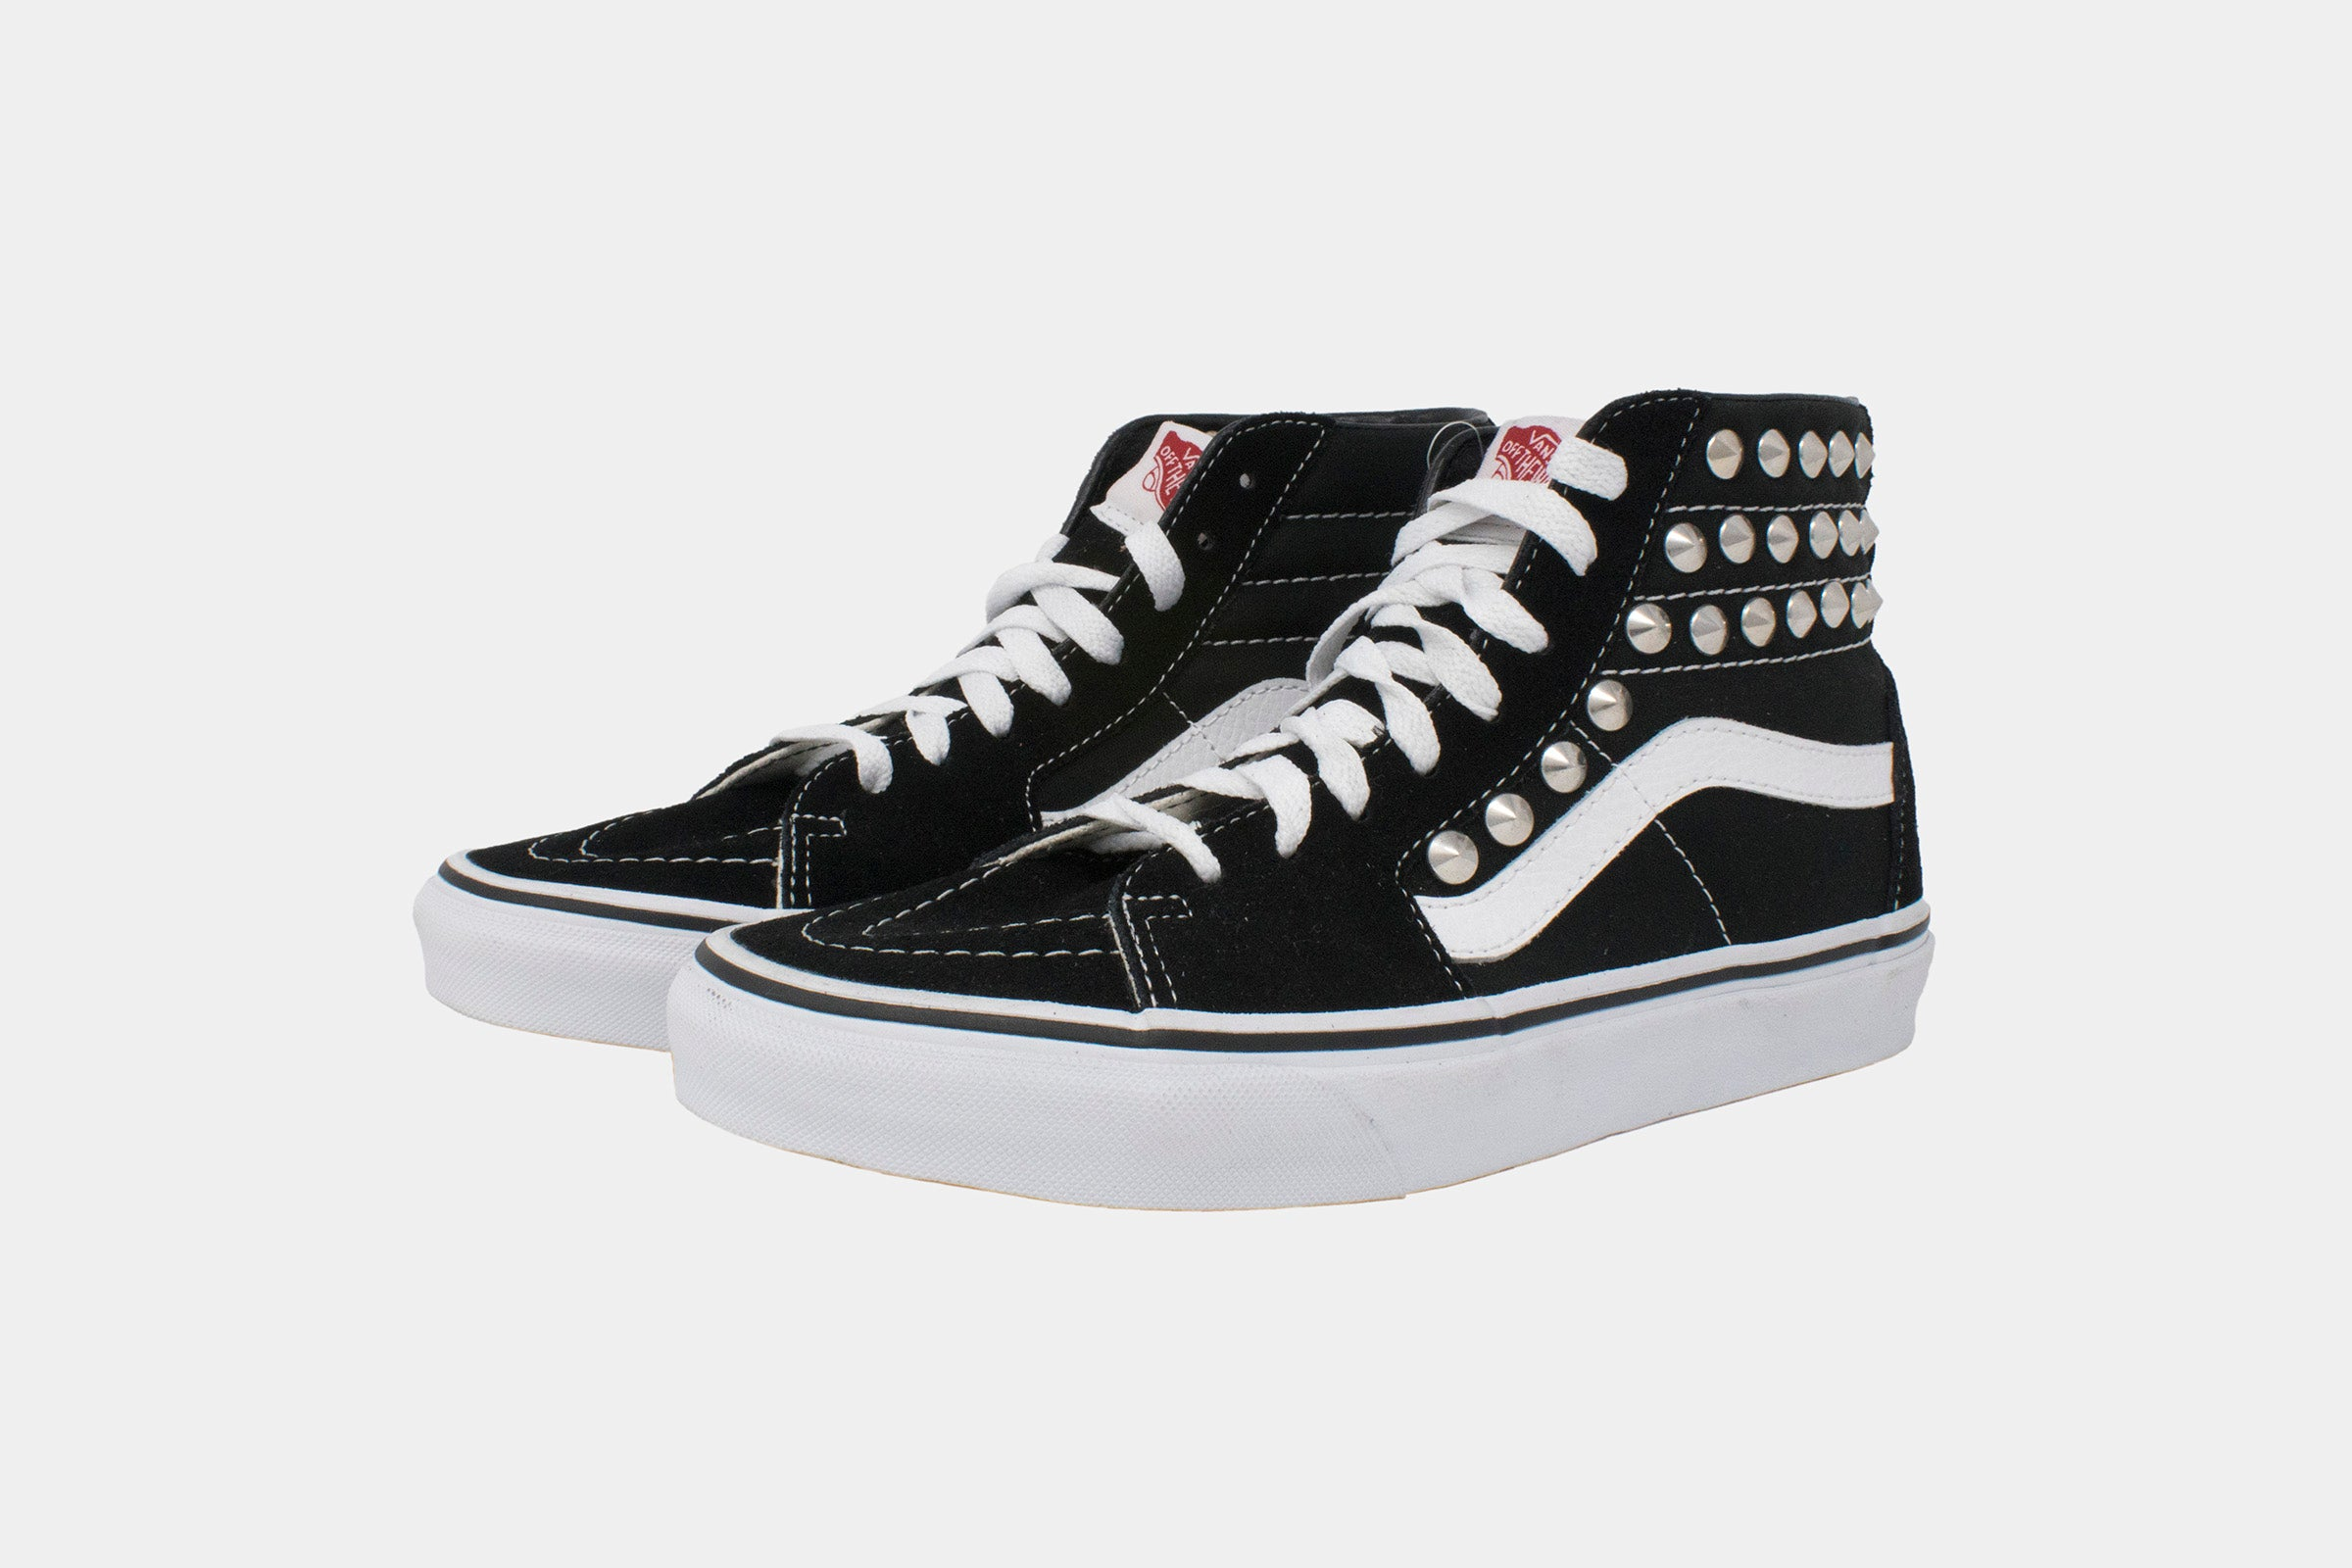 Vans/SK8-Hi/Rule the World